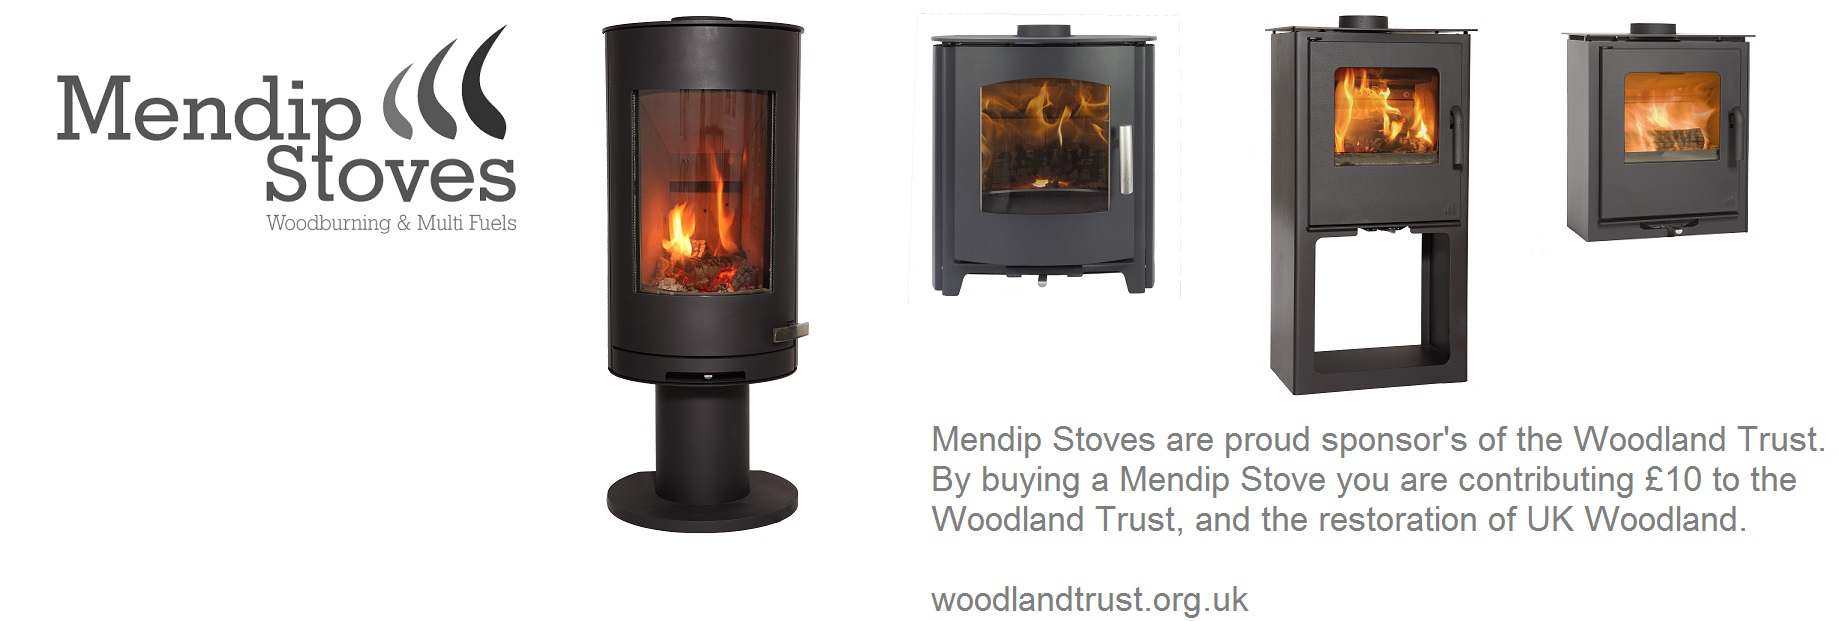 Mendip Stoves - Woodburning & Multi-fuel Stoves